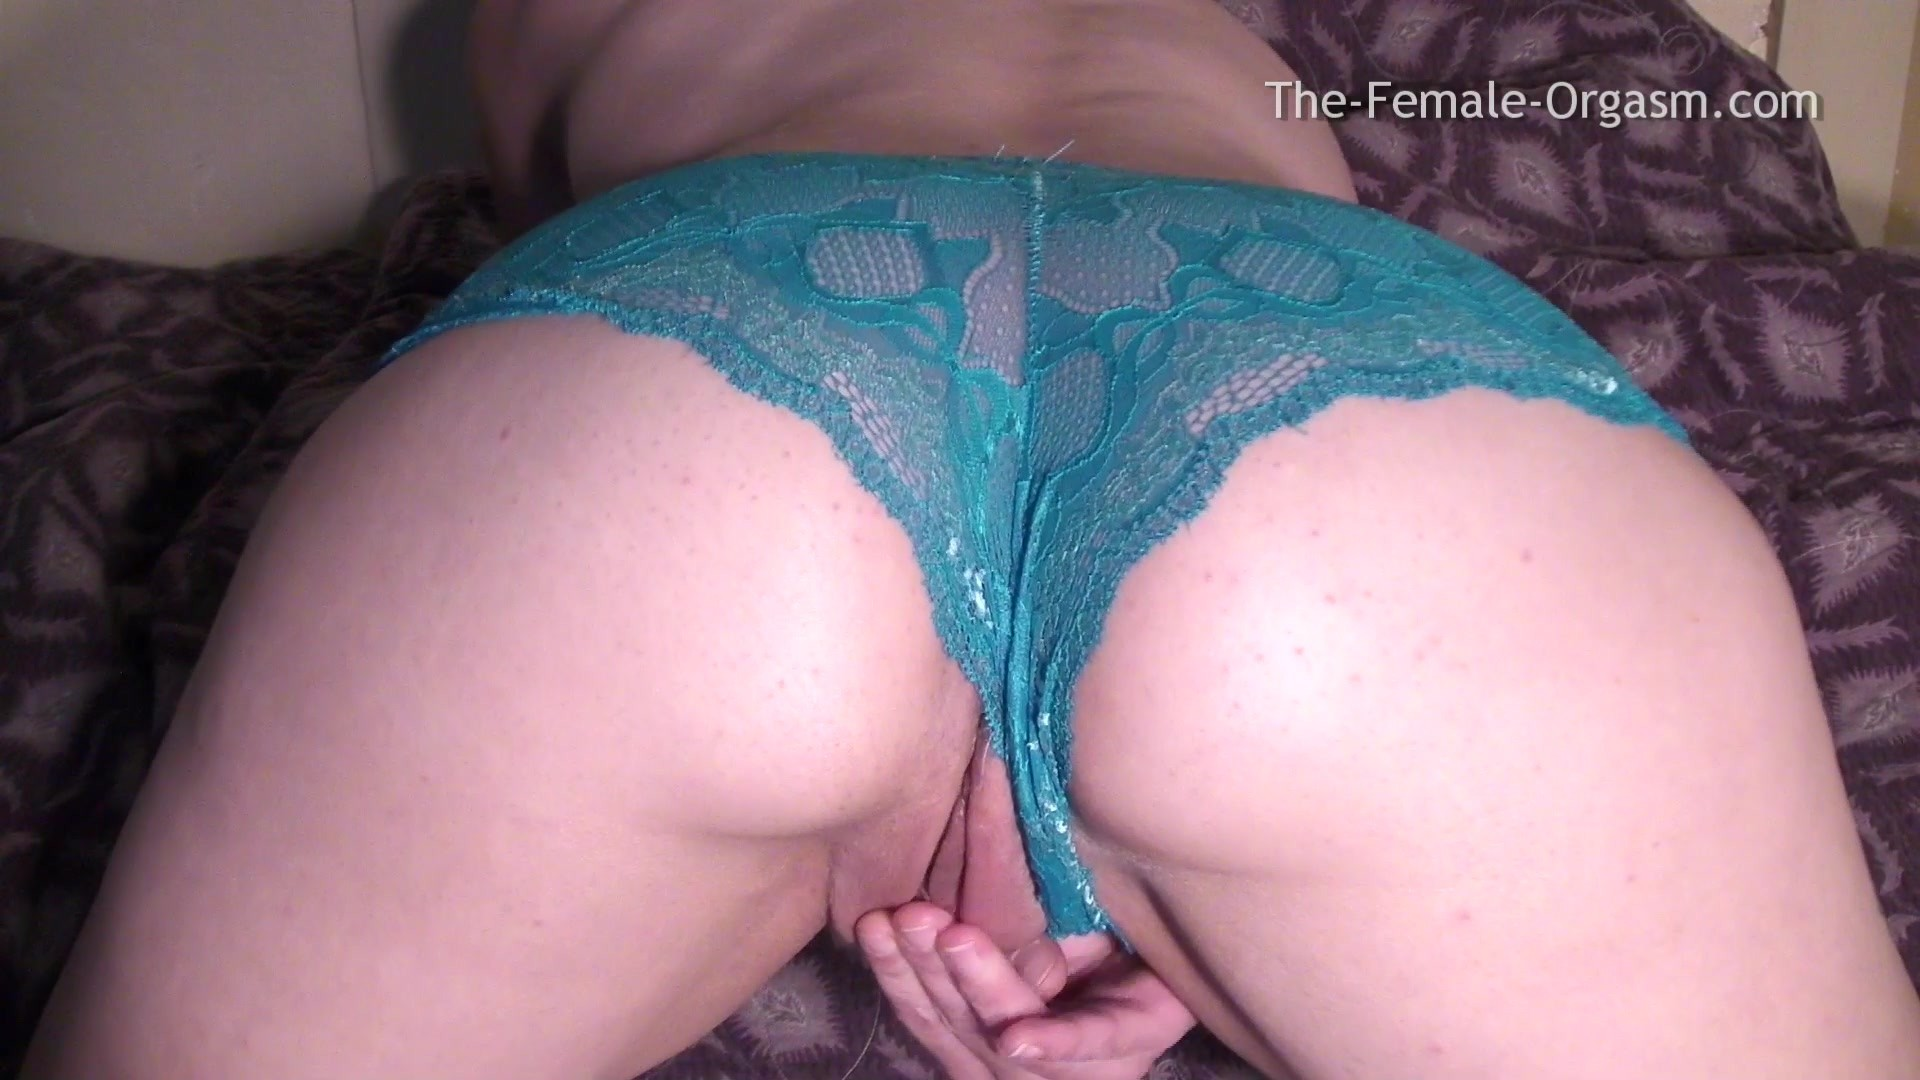 Pussy under lace panties